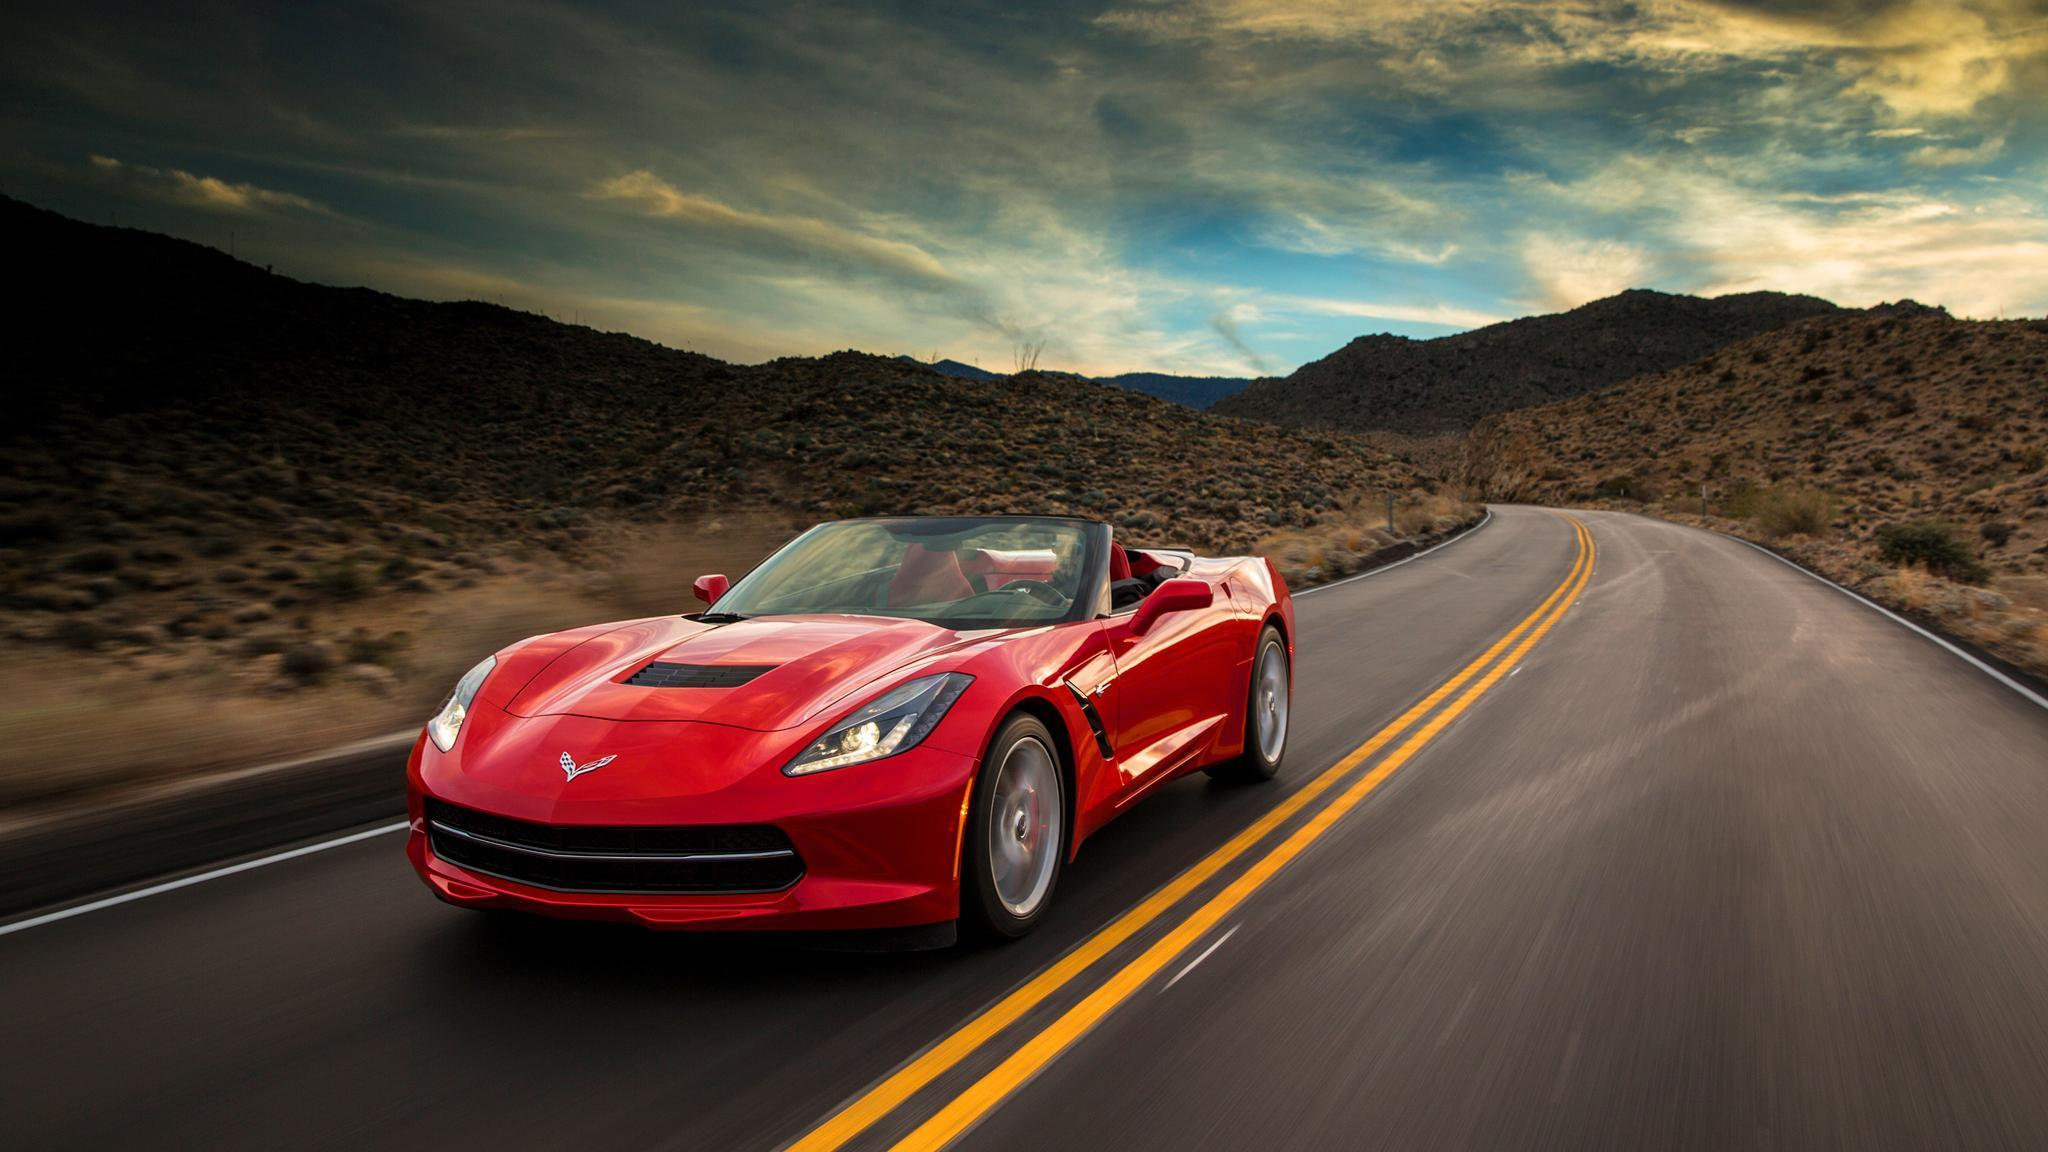 corvette wallpaper hd - photo #7